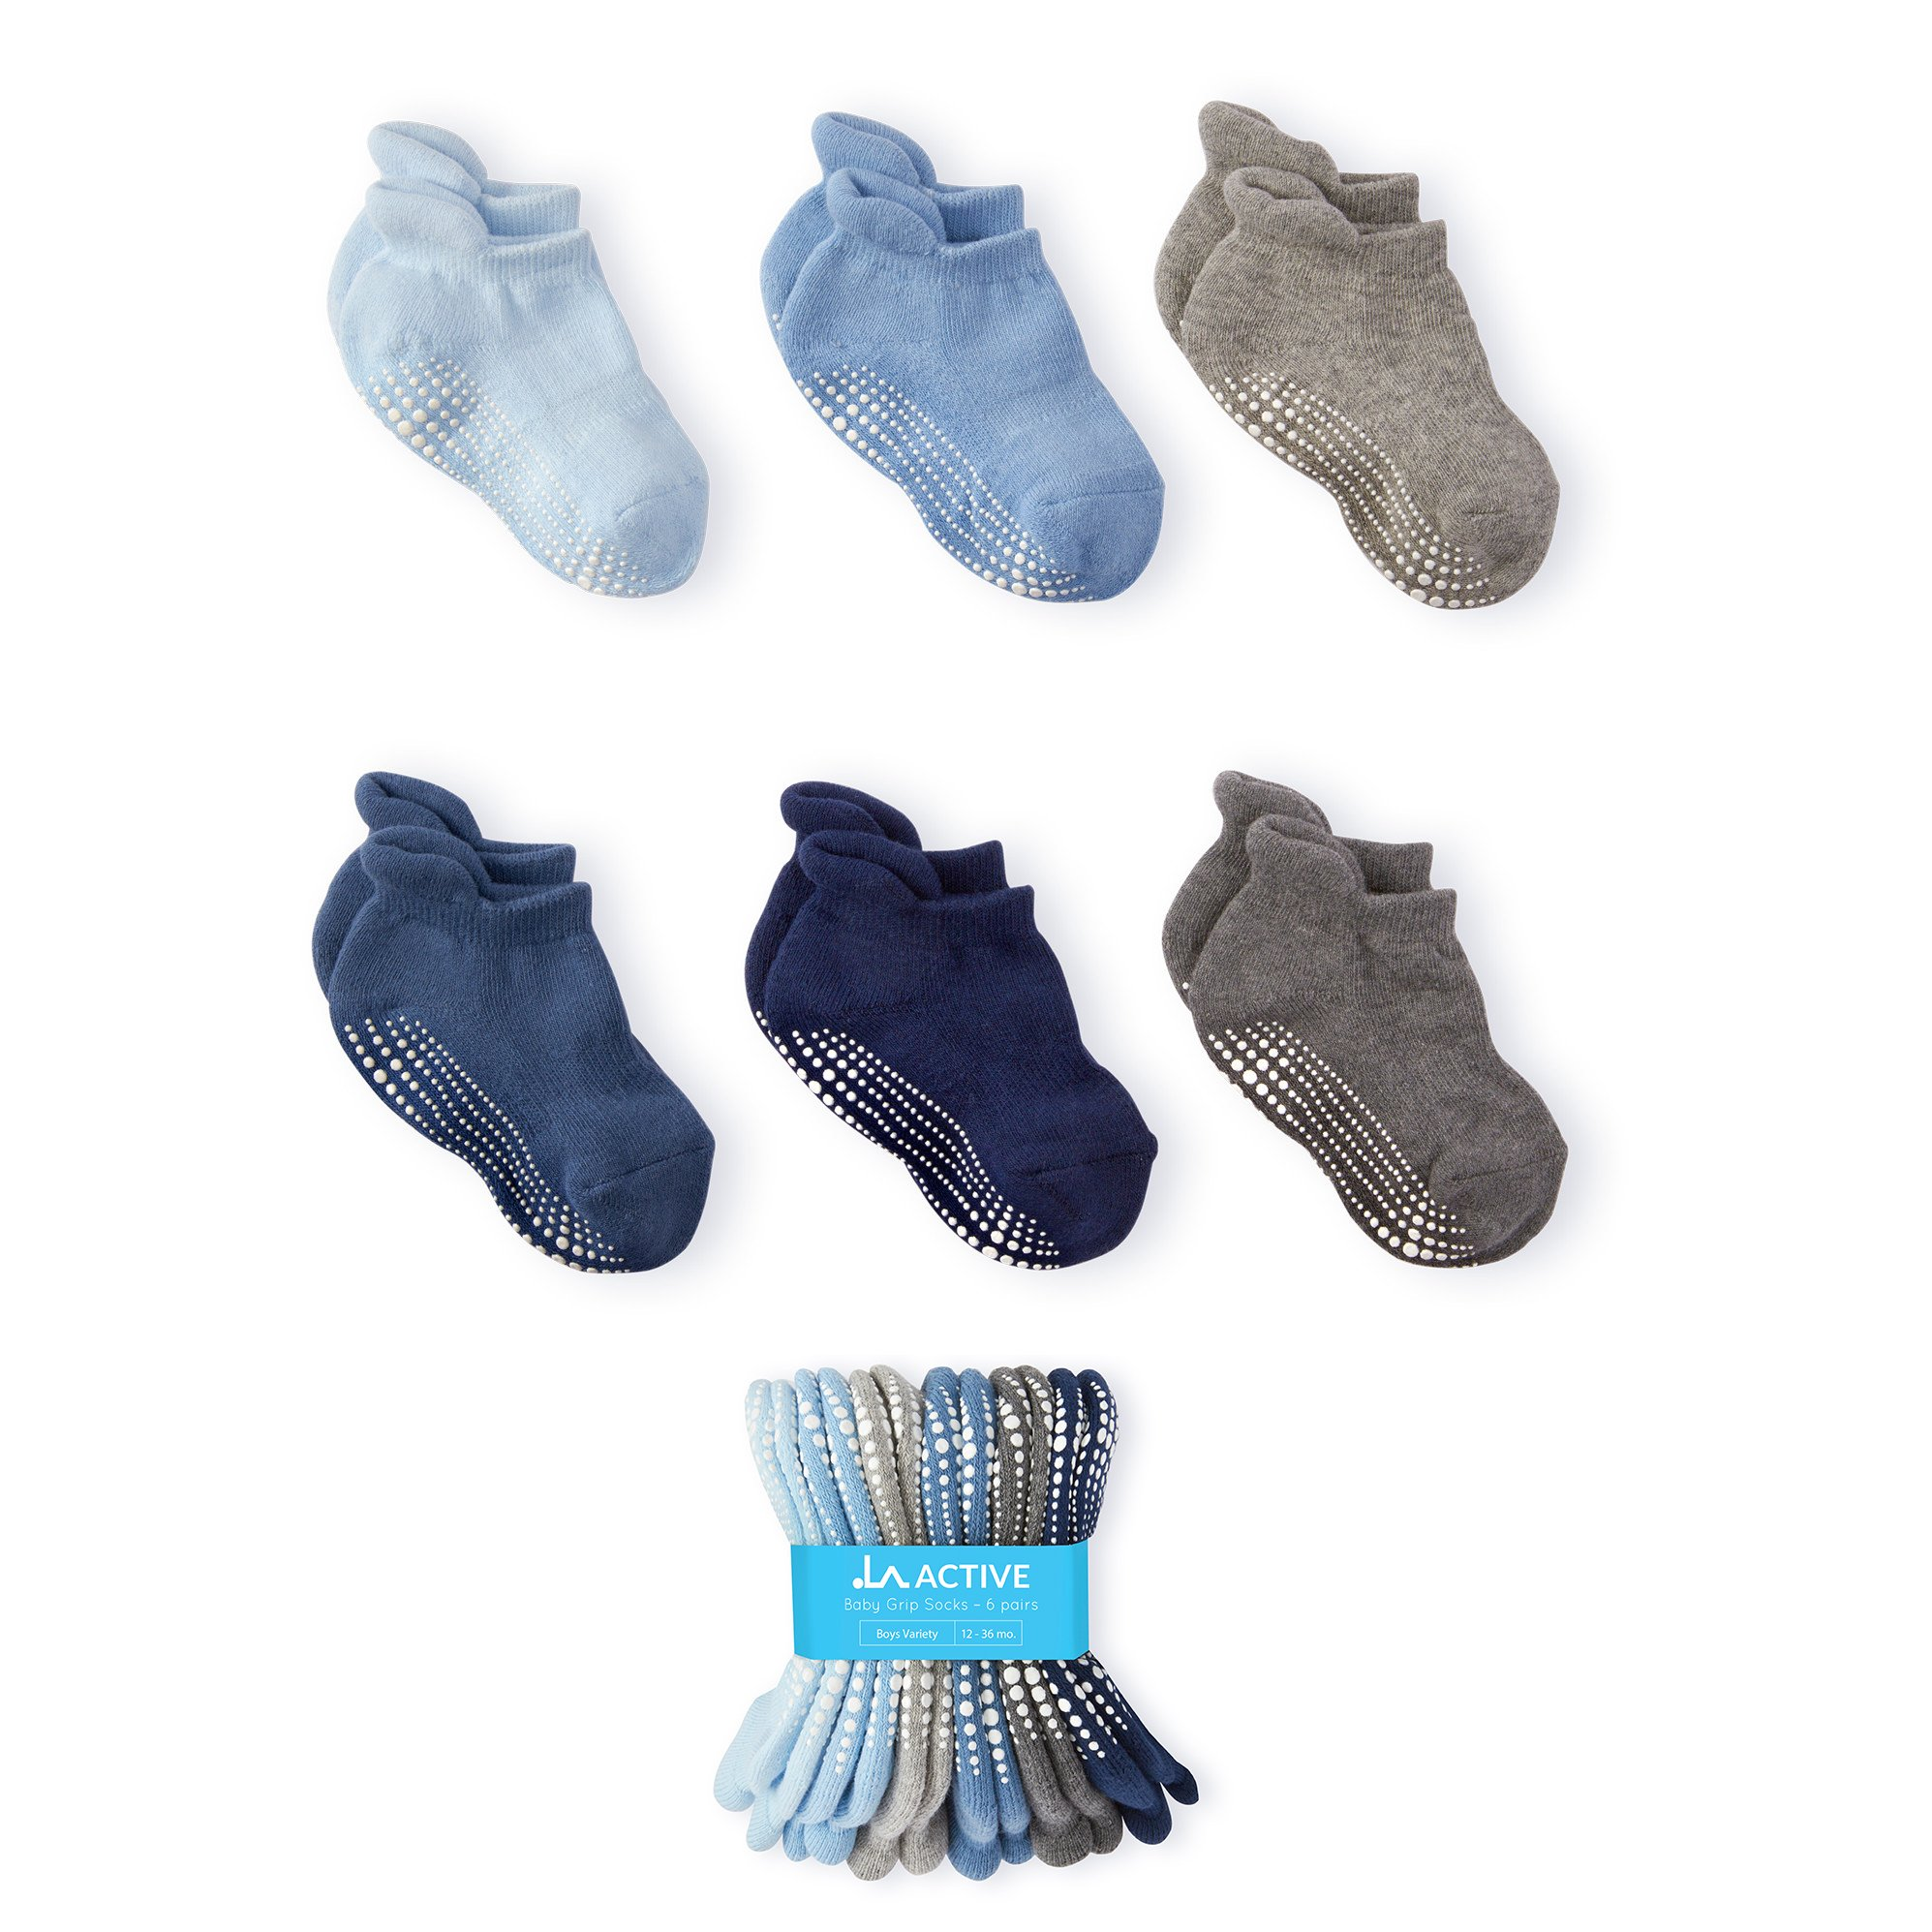 LA Active Baby Toddler Grip Ankle Socks - 6 Pairs - Non Slip/Skid Covered (Boys)